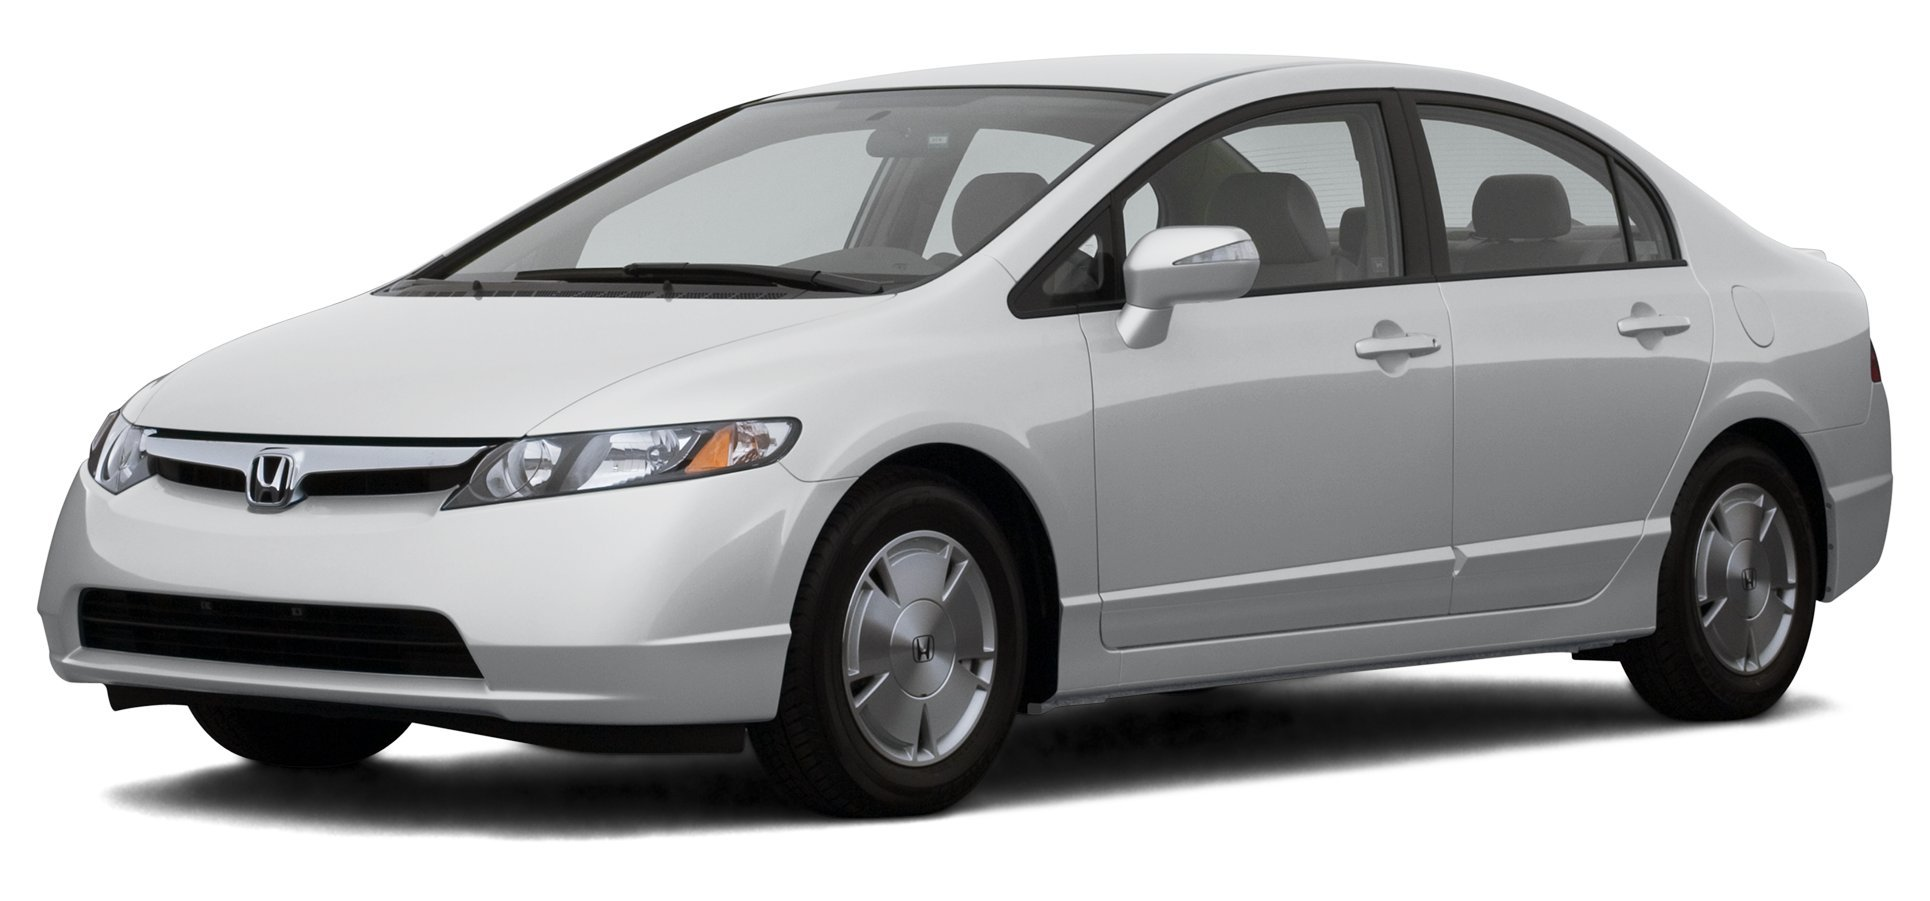 2007 honda civic reviews images and specs vehicles. Black Bedroom Furniture Sets. Home Design Ideas